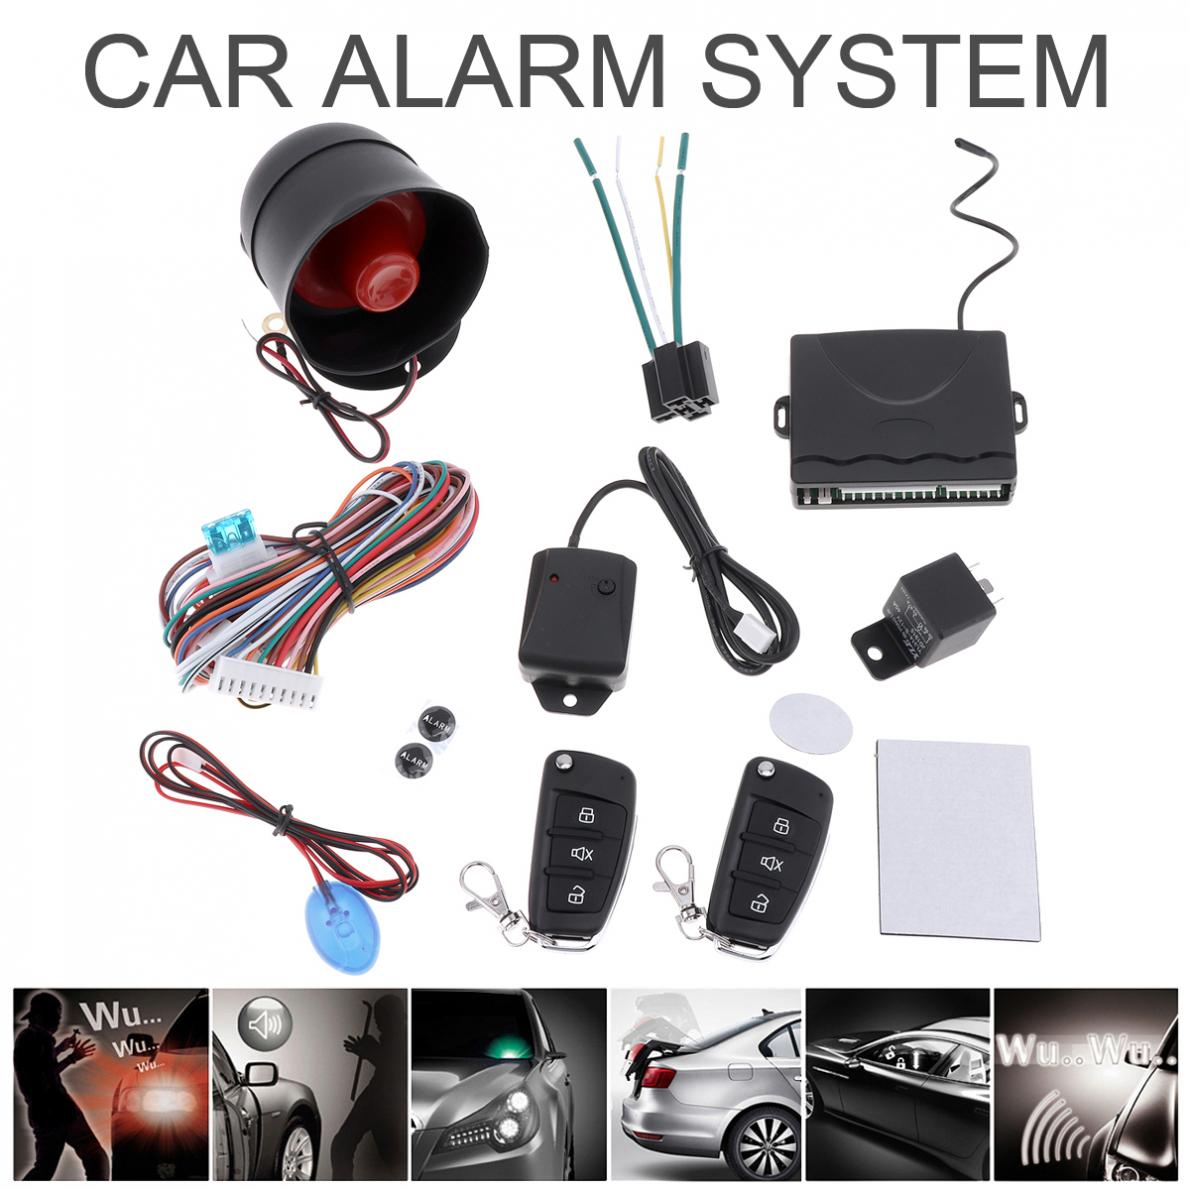 12V Auto Car Alarm Systems Vehicle Remote Central Kit Door Lock Locking Keyless Entry System Central Locking with Remote Control цена